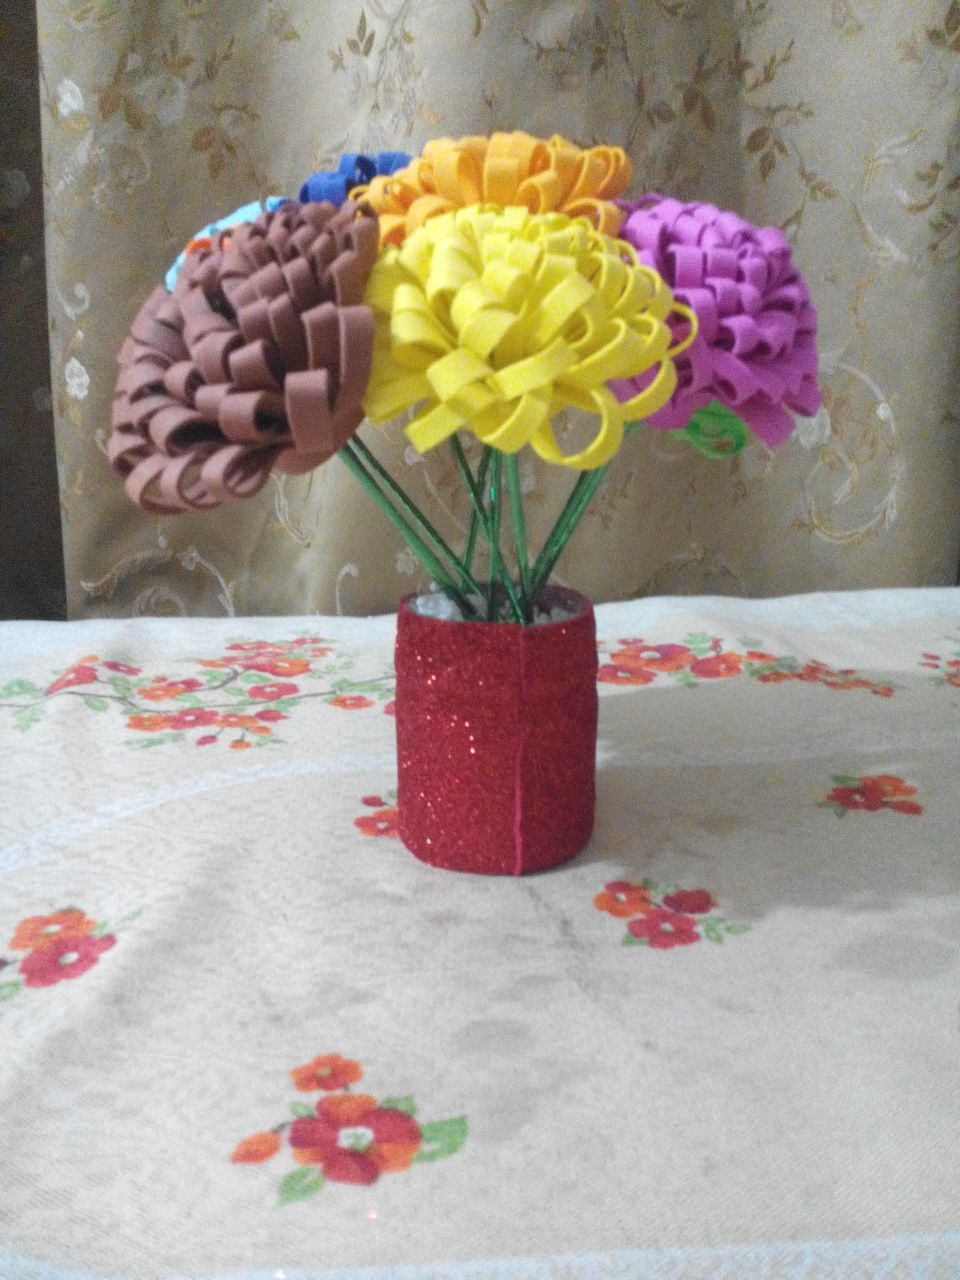 Easy steps to make flower vase from fomic sheet 7 easy steps to make flower vase from fomic sheet reviewsmspy